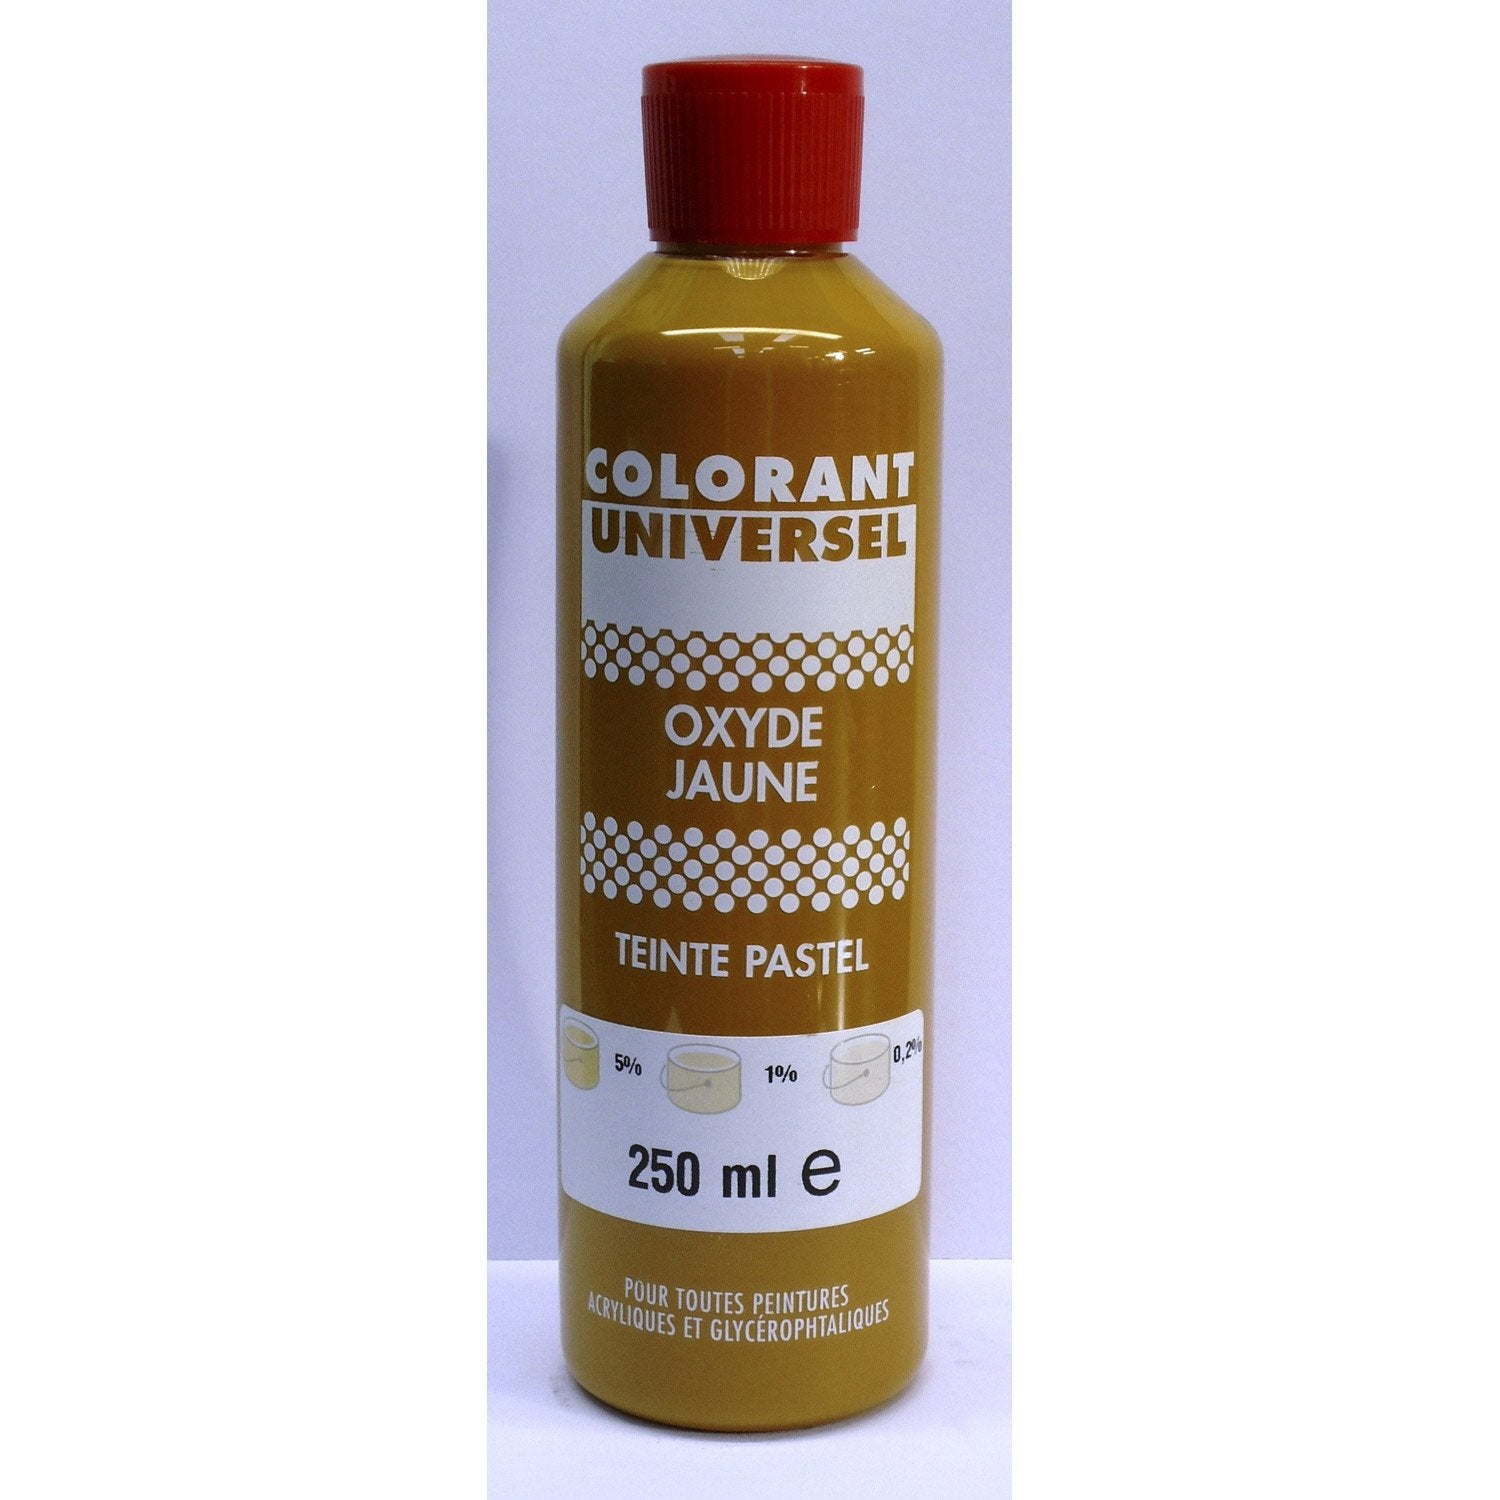 colorant universel oxyde jaune 250 ml - Colorant Peinture